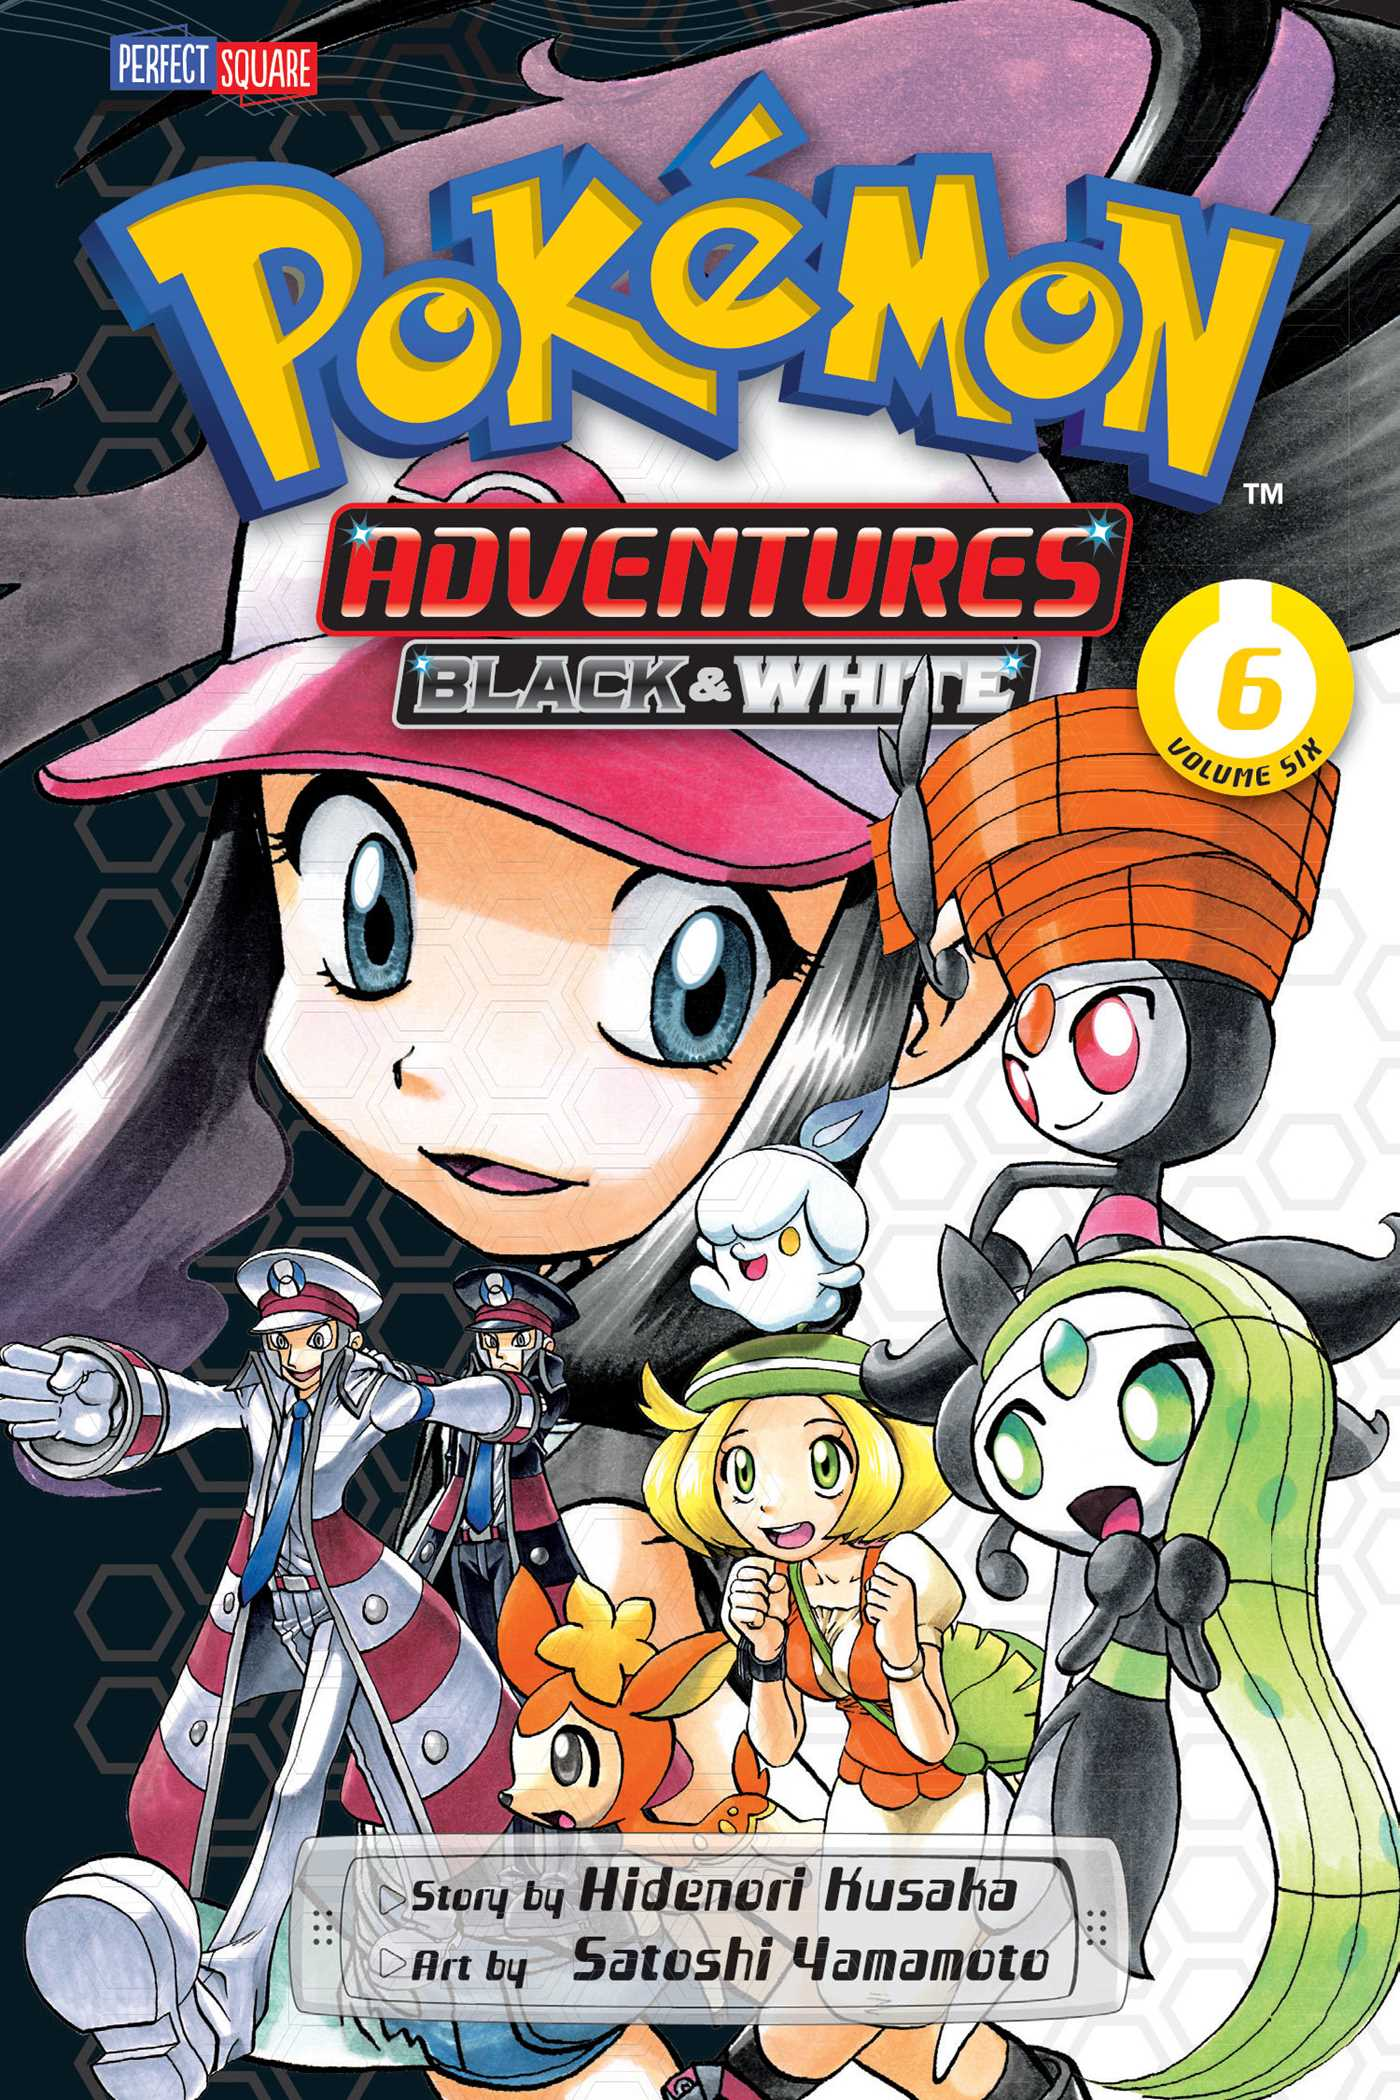 Pokemon adventures black and white vol 6 9781421571812 hr